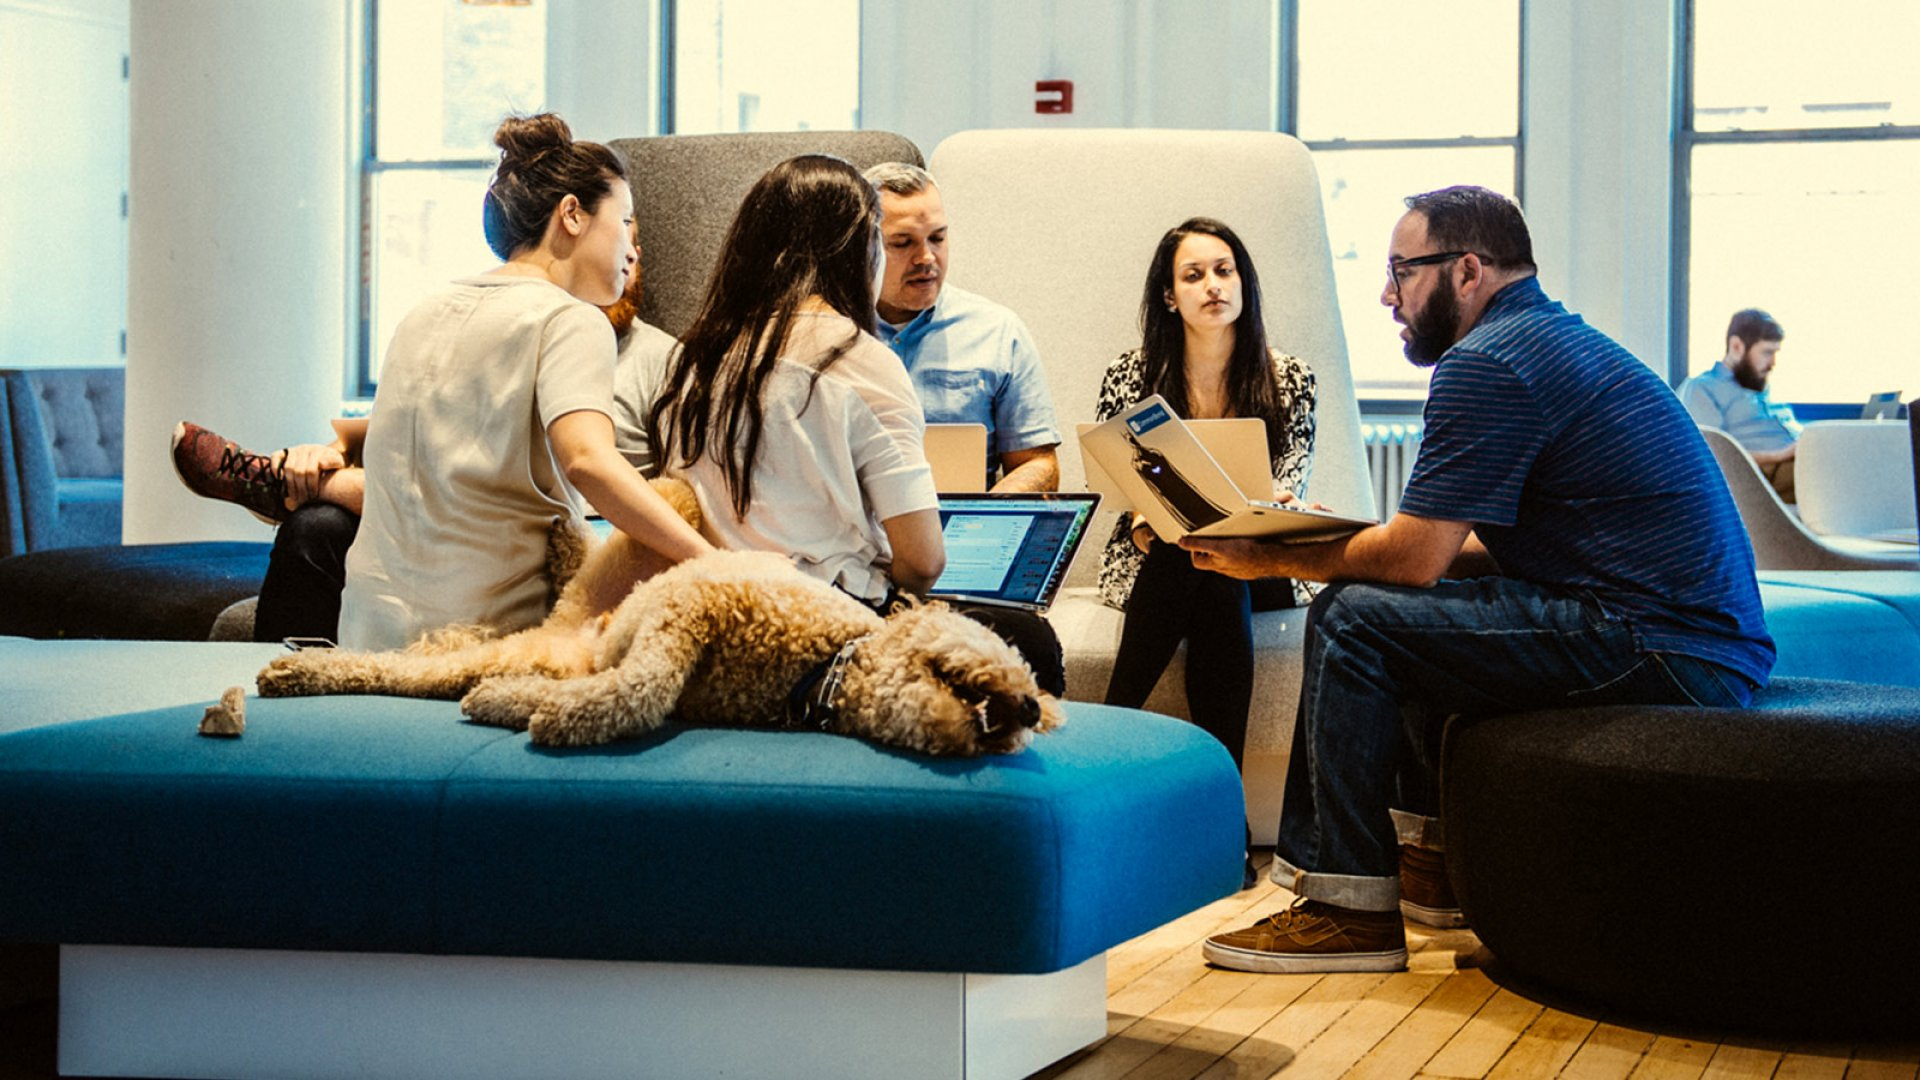 Members of the staff (and Hudson, the goldendoodle) meet in CommonBond's SoHo office.